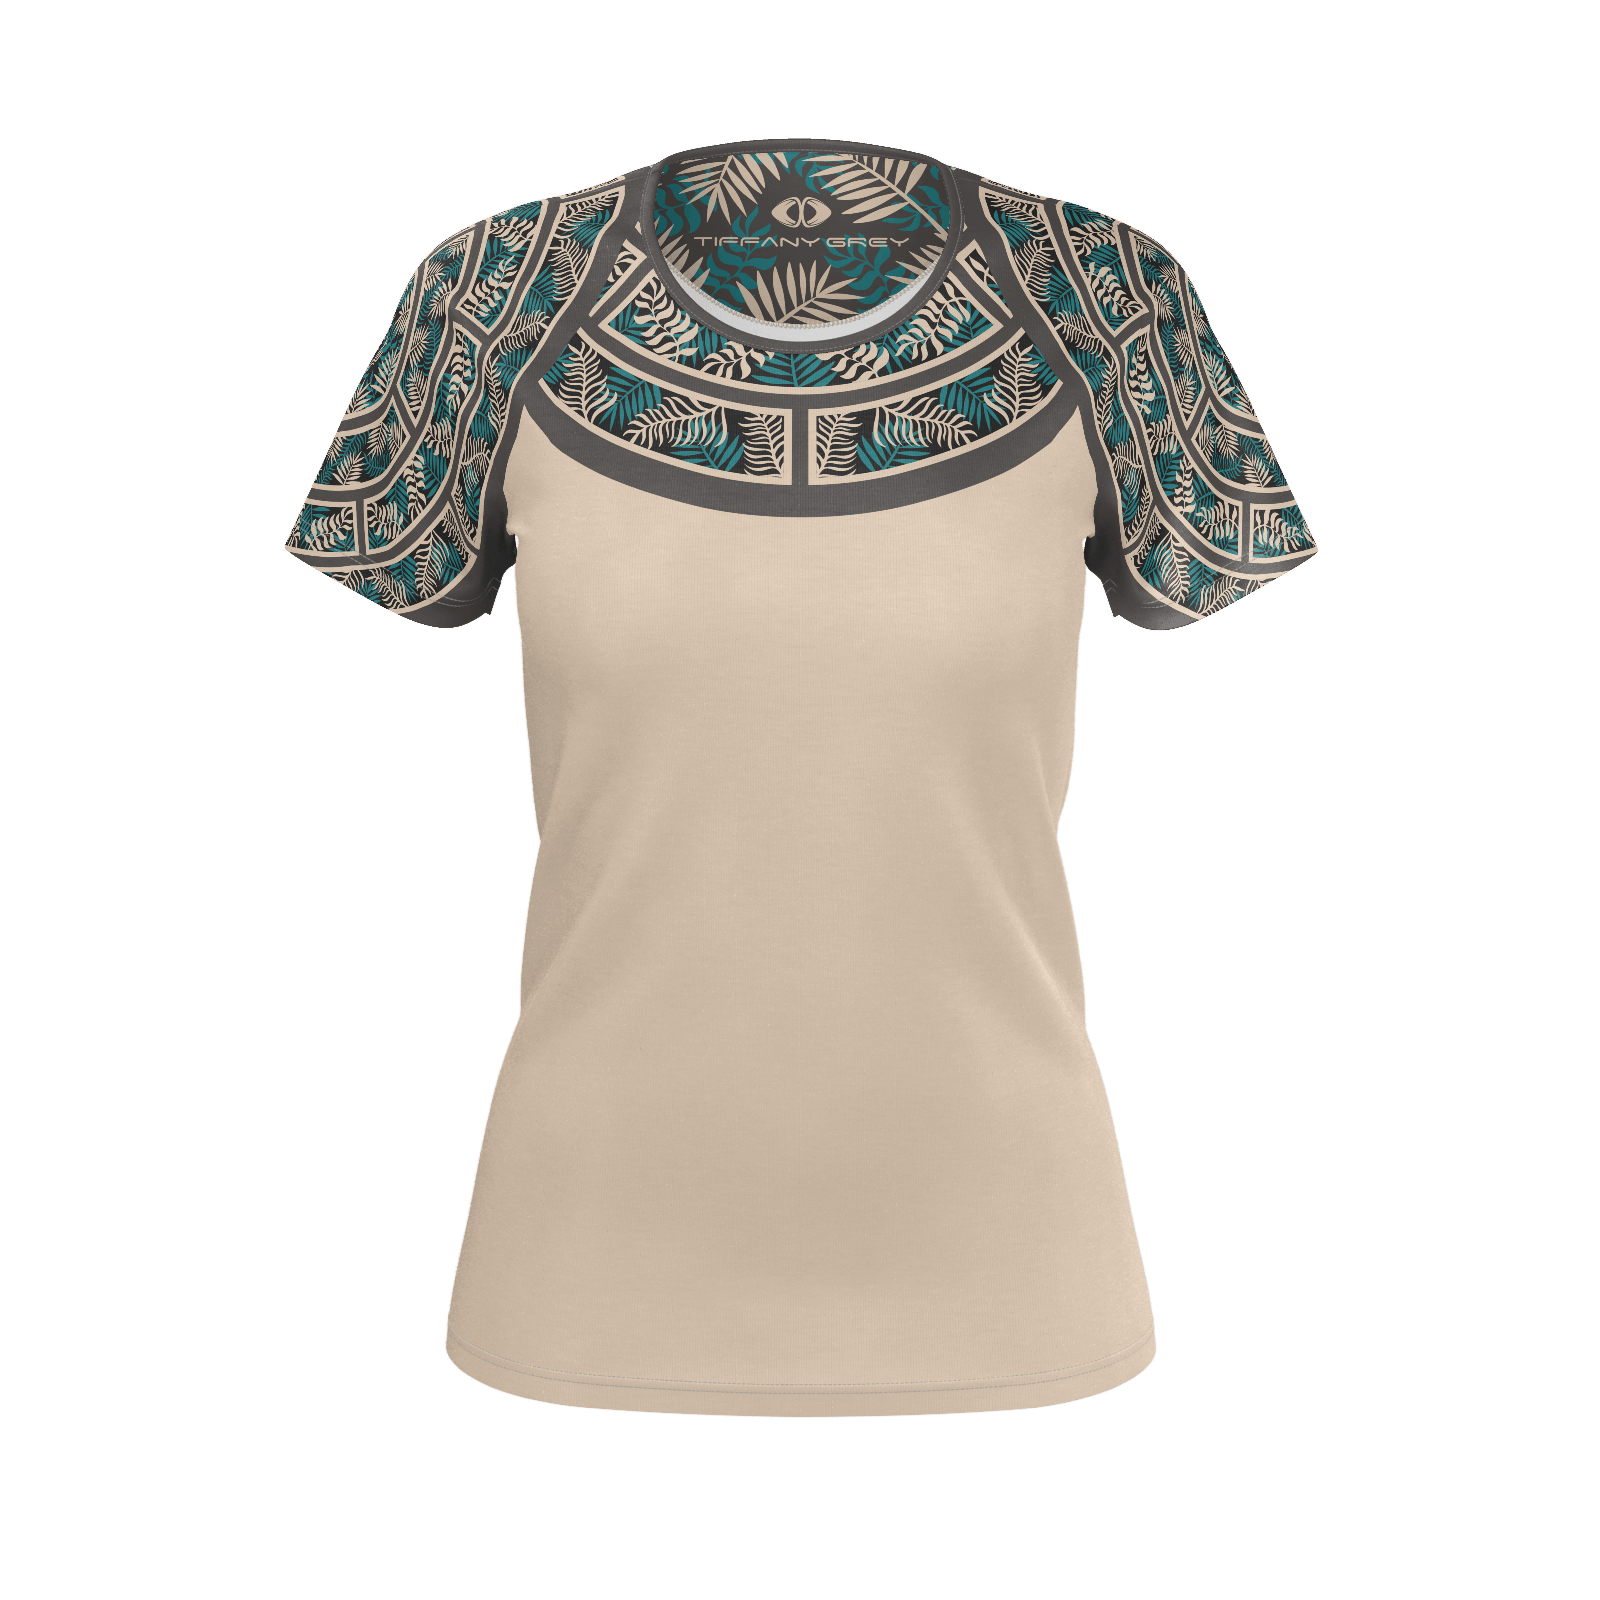 Tiffany Grey - Junglenaut Teal Sandstone T-shirt for Her